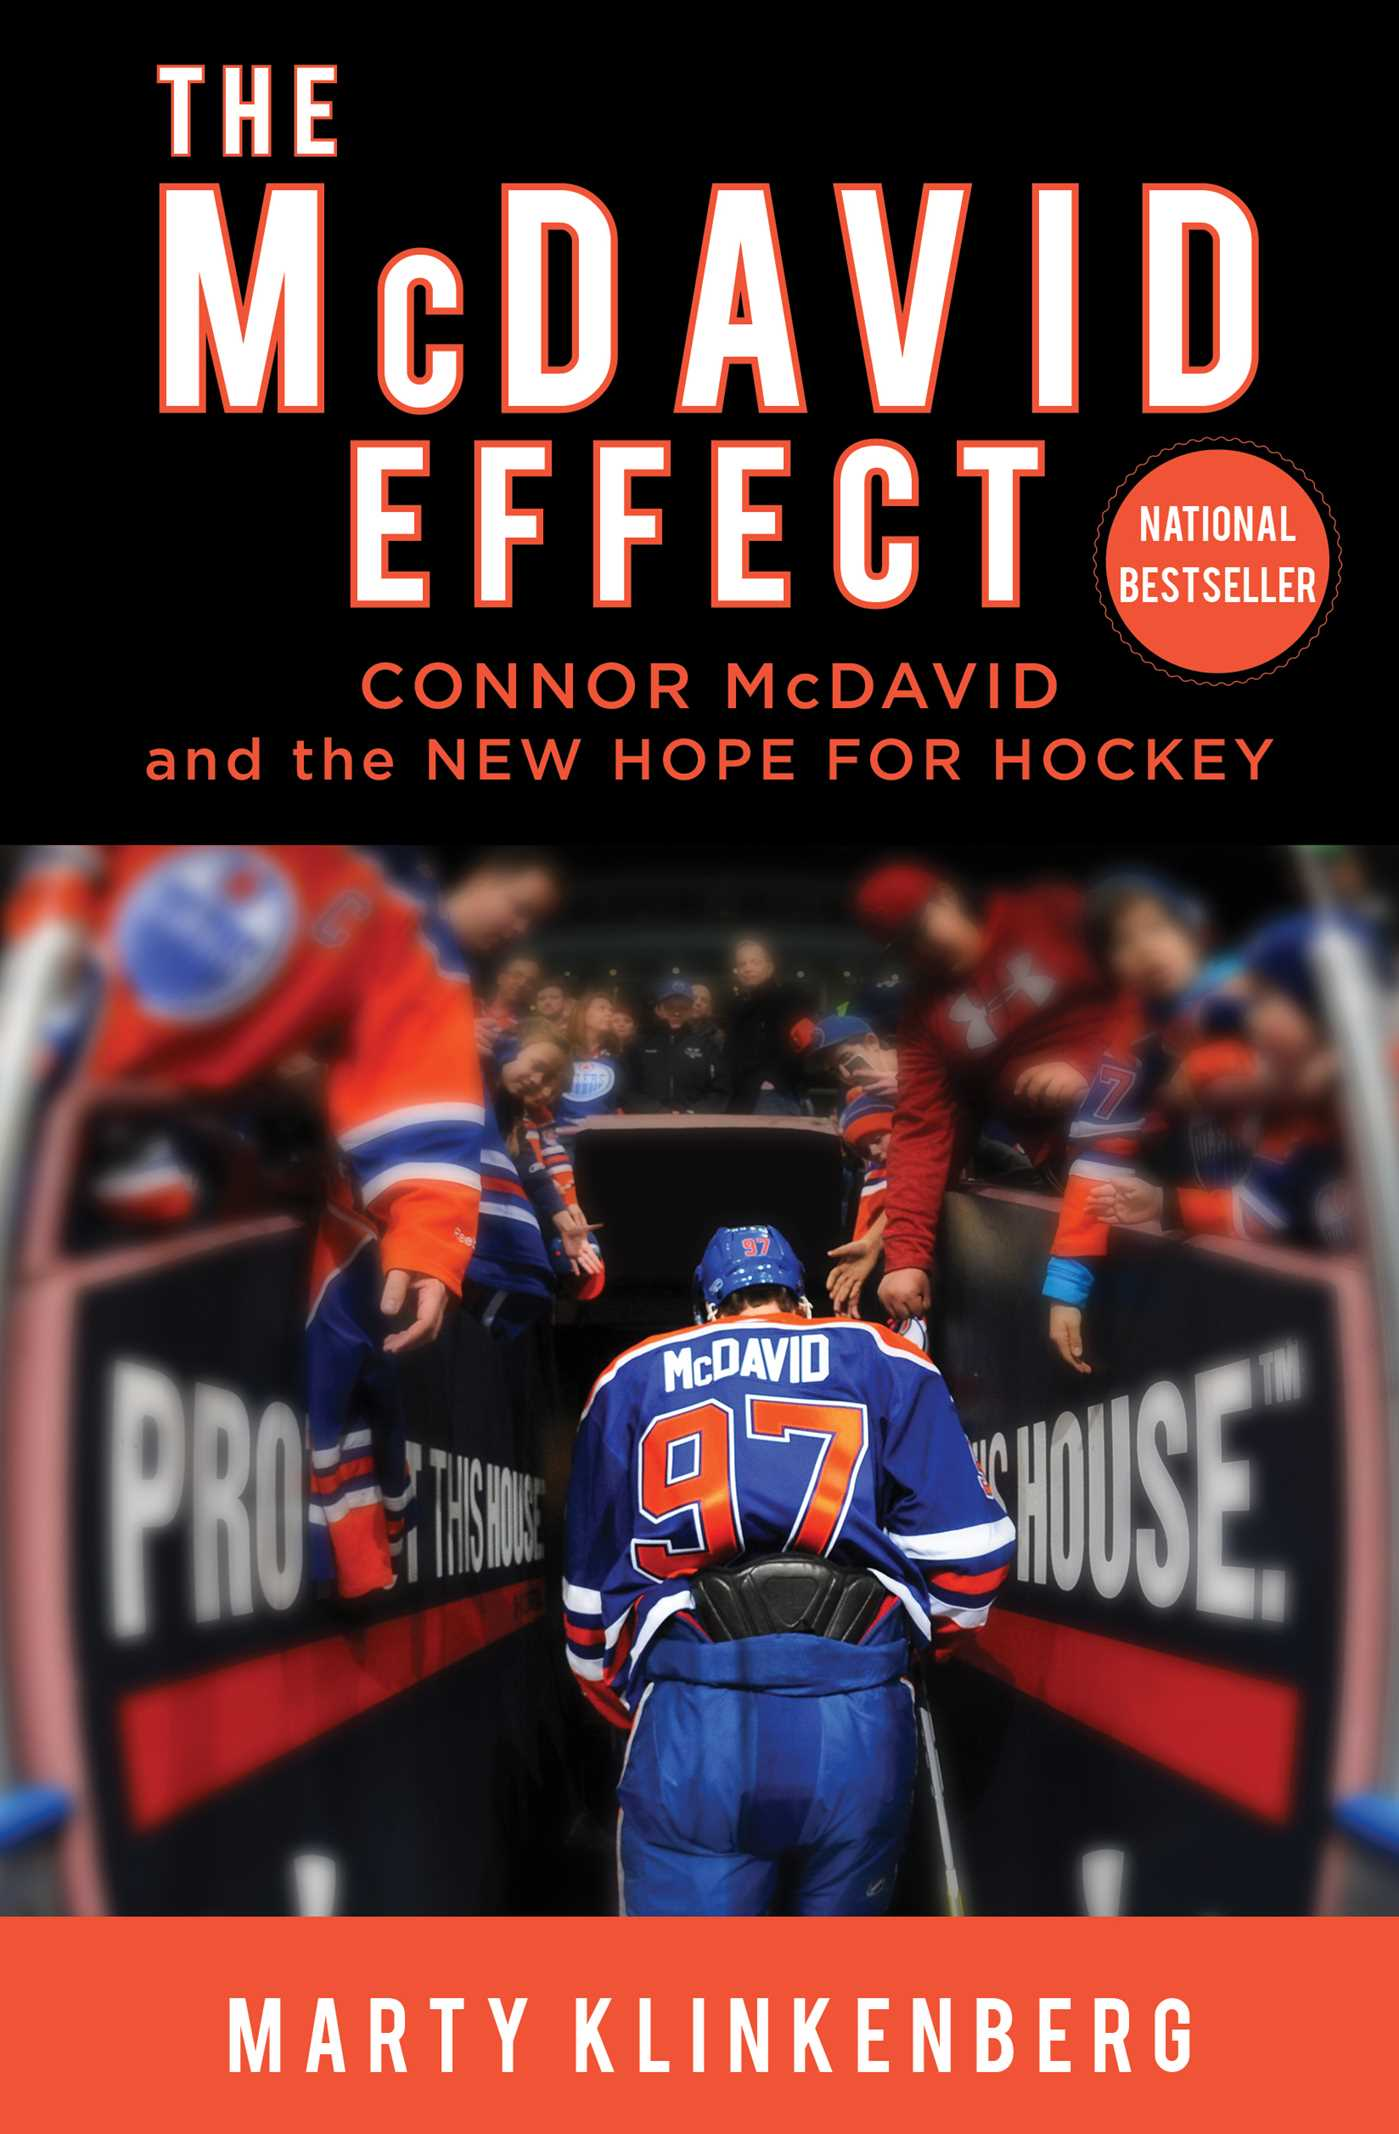 The mcdavid effect 9781501146046 hr